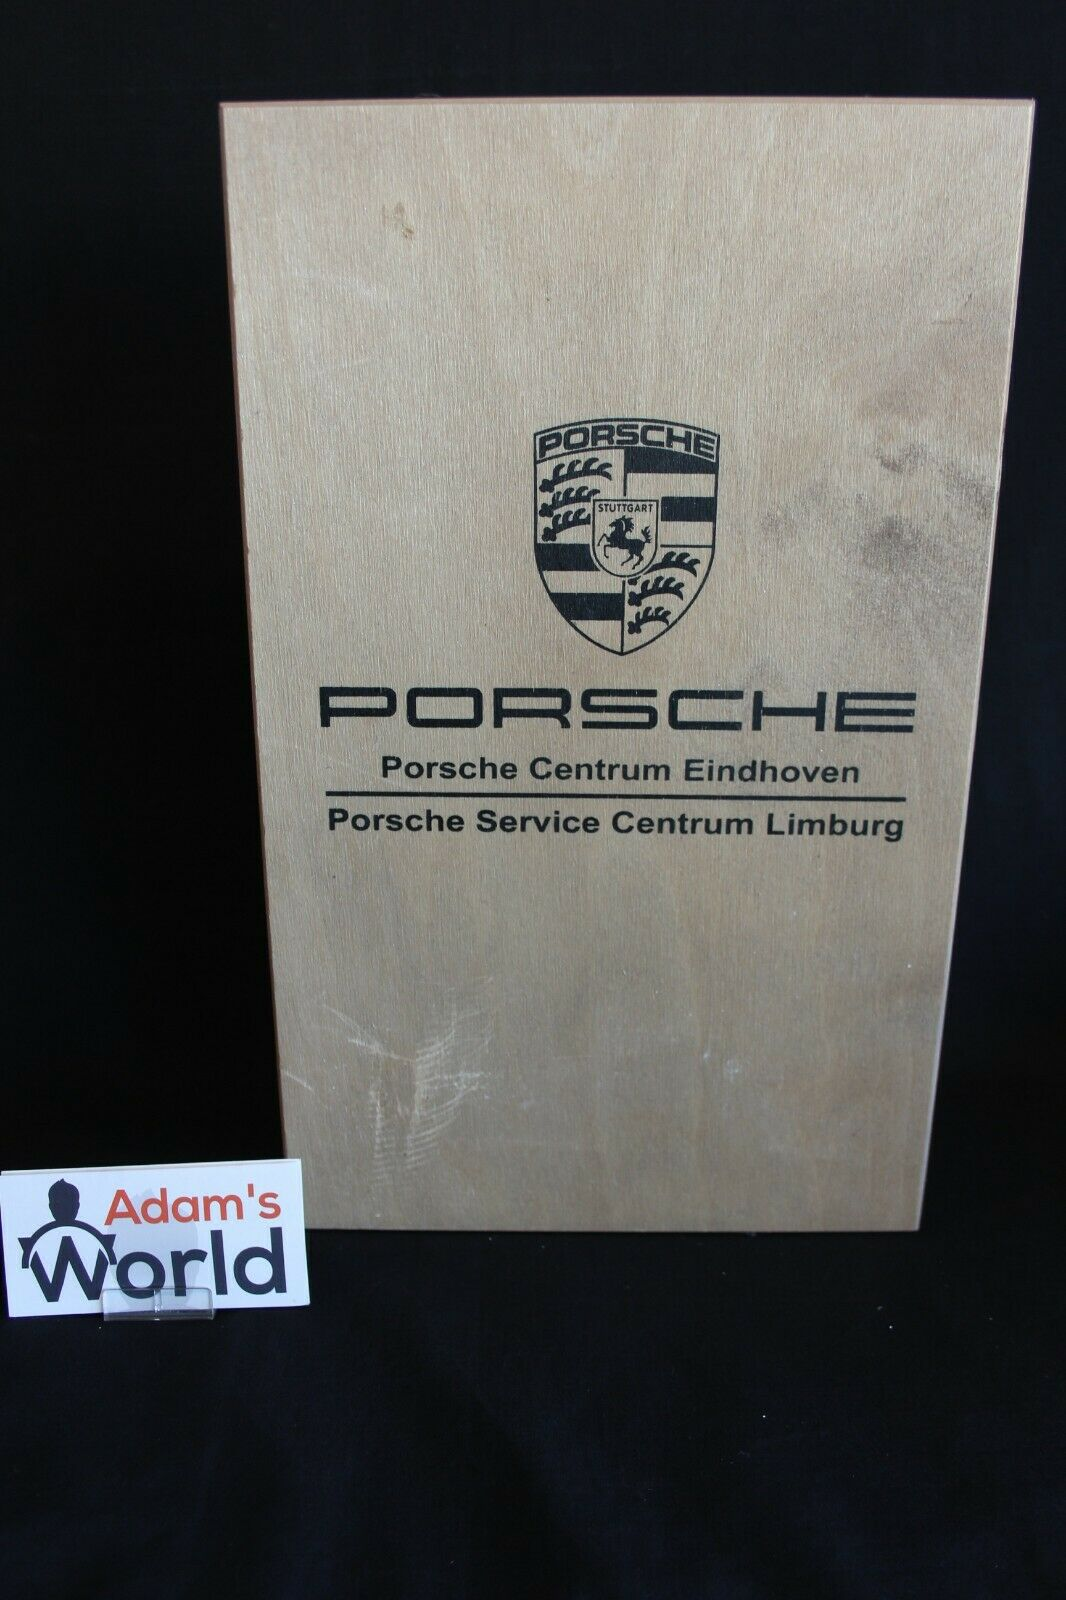 Wooden wine box  Porsche Centrum Eindhoven  with 2 bottles of wine (JS)